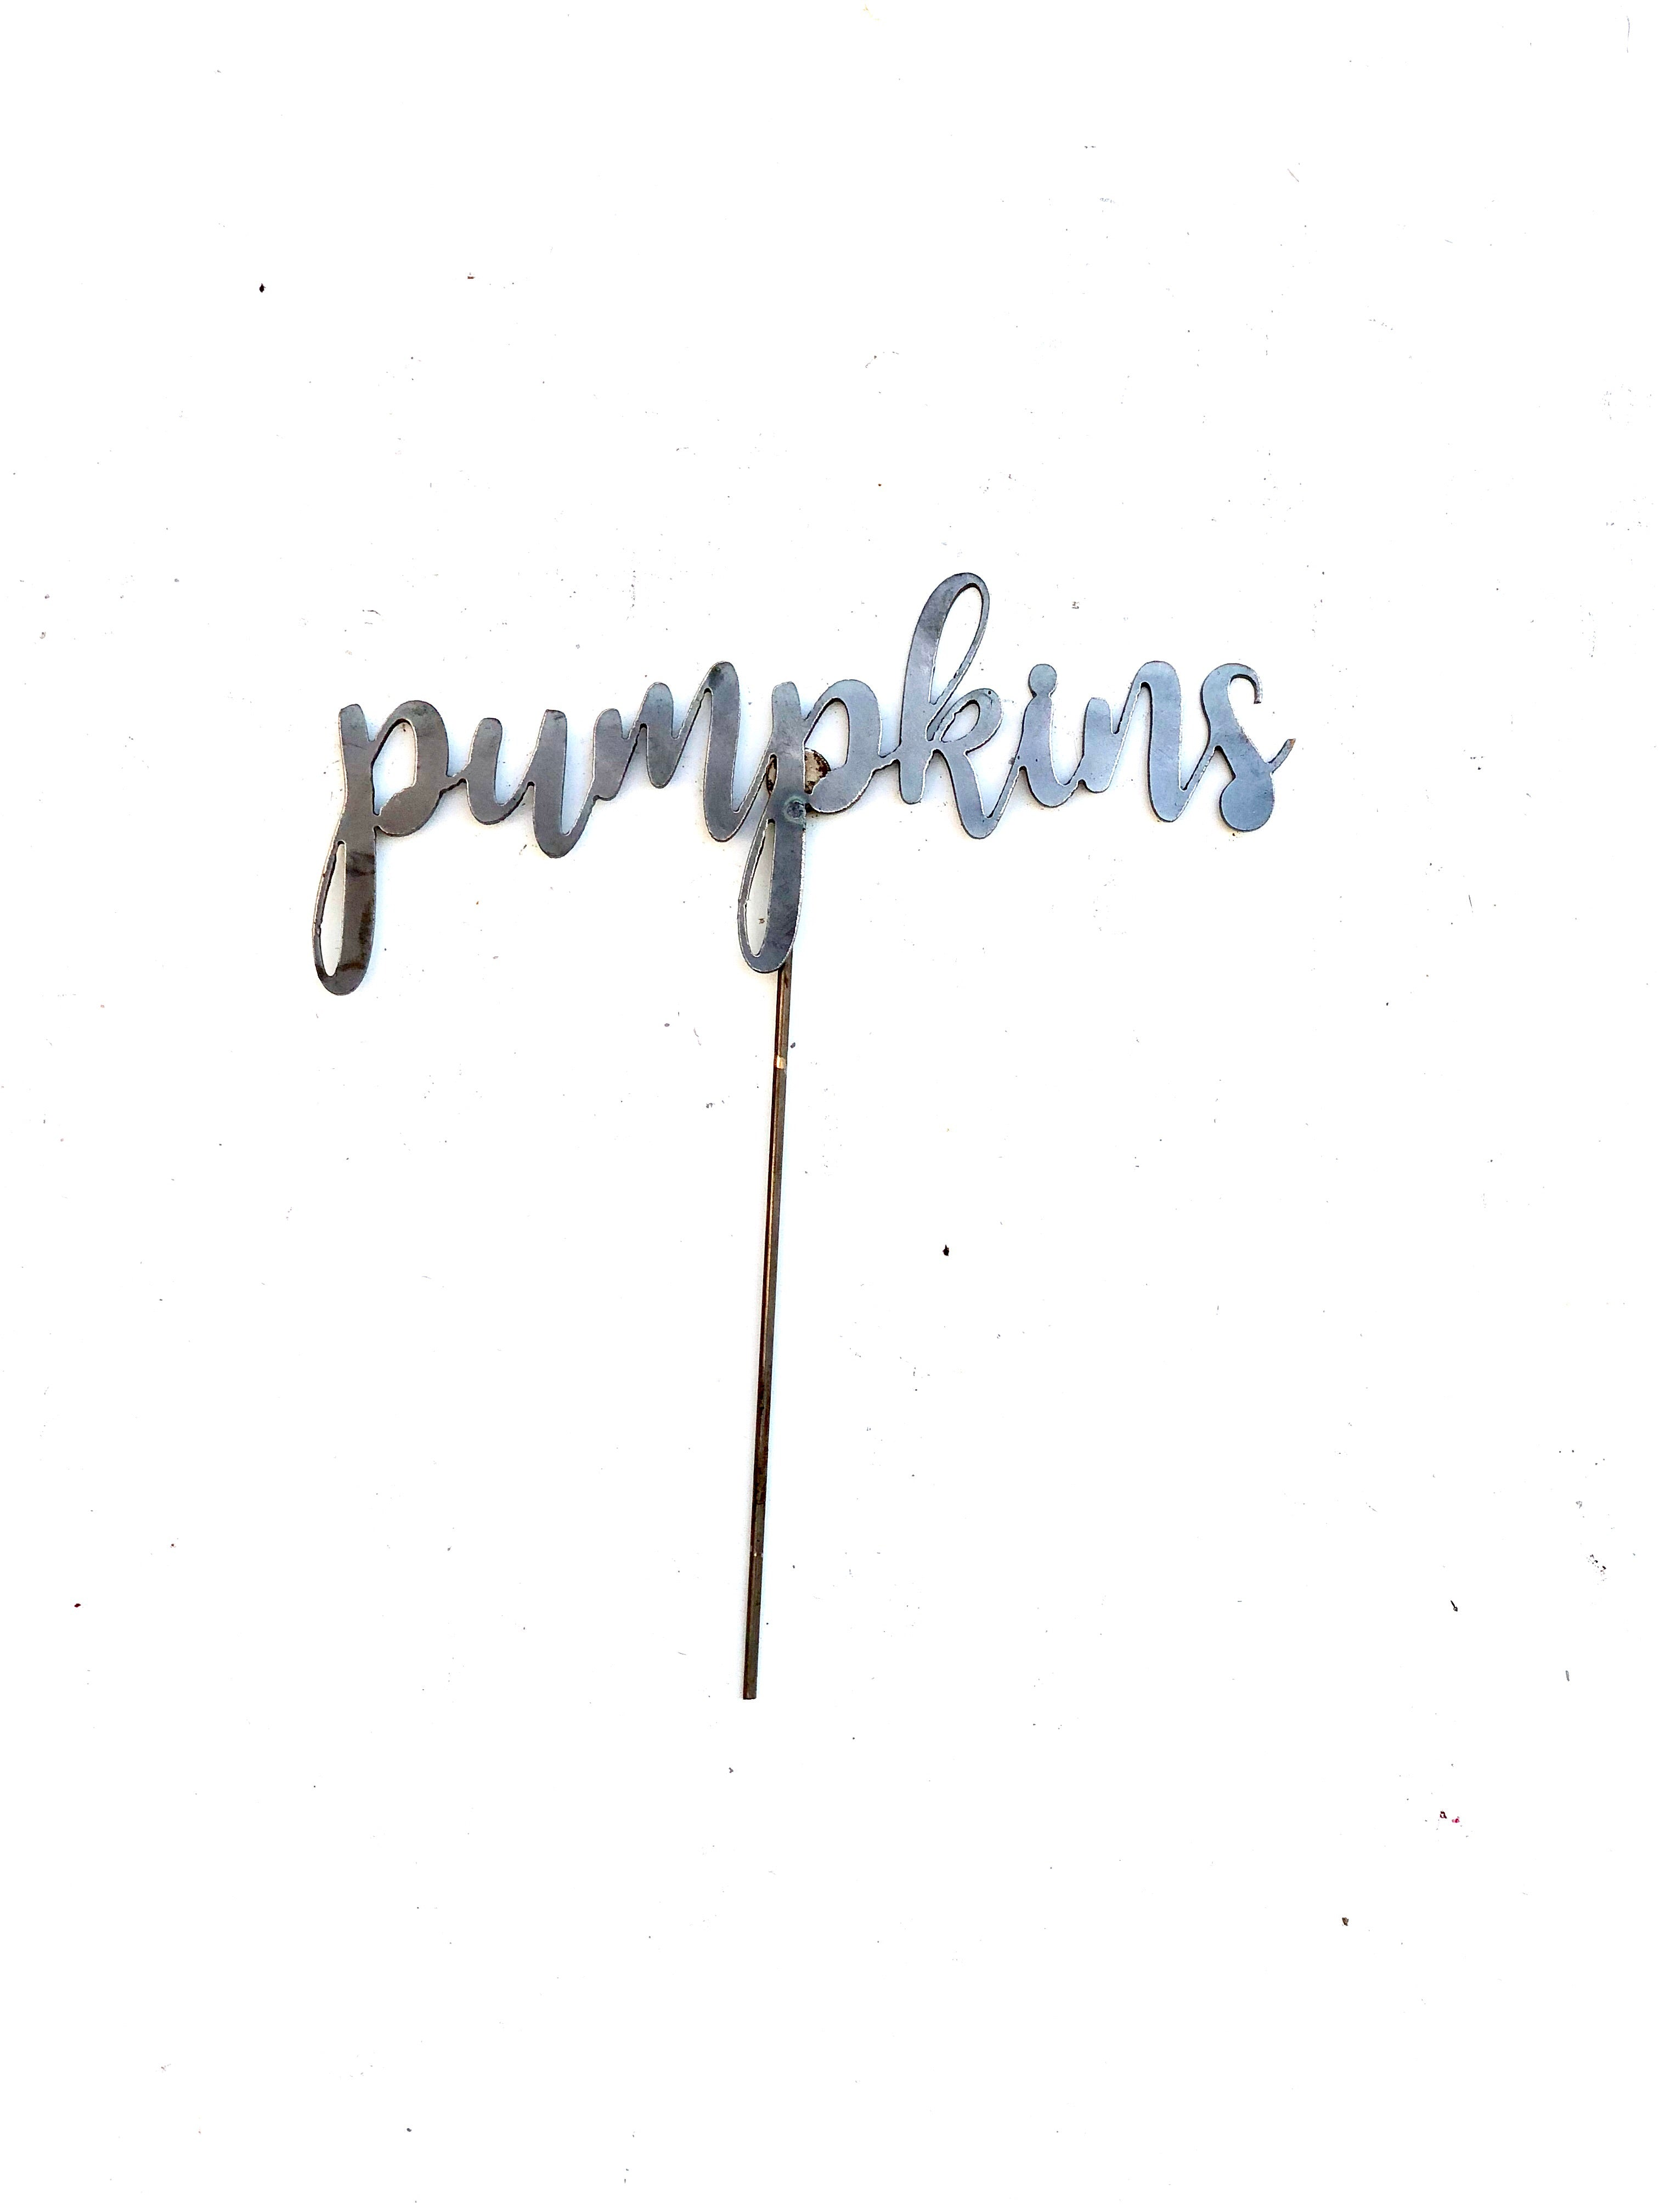 Fall themed script word metal stake